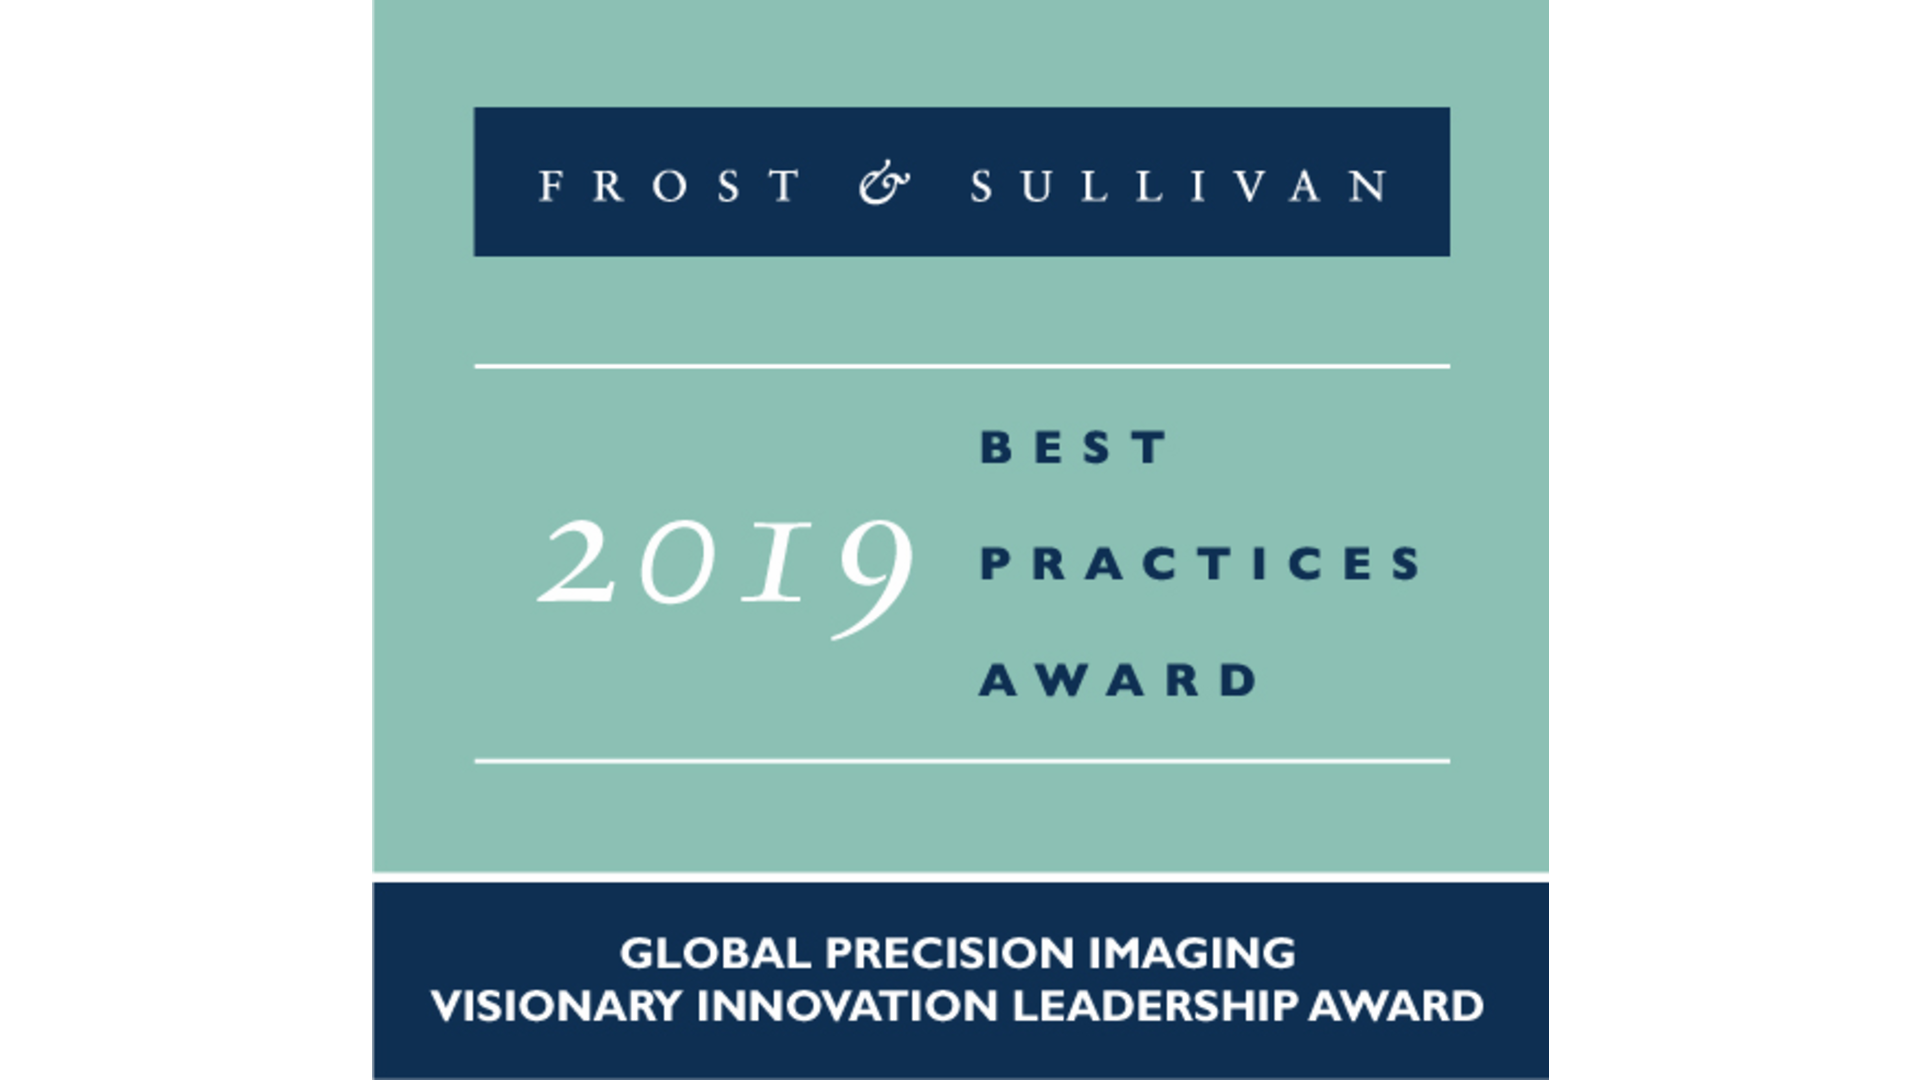 Frost & Sullivan Global Visionary Innovation Leadership Award 2019 Logo